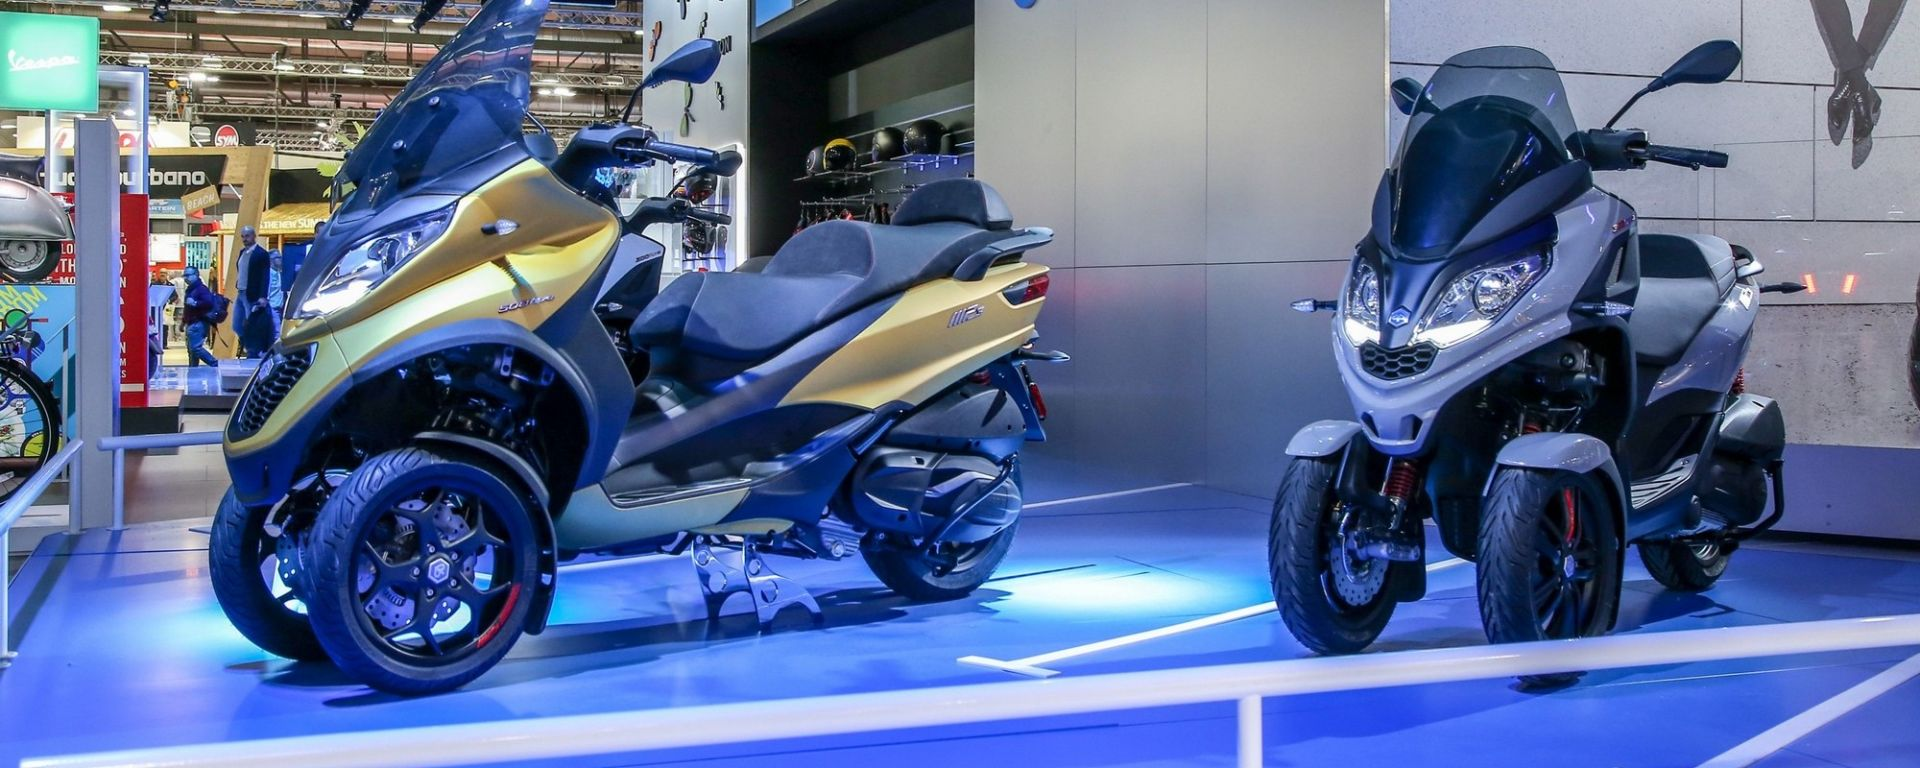 Piaggio MP3 500 HPE Sport Advanced, Eicma 2018